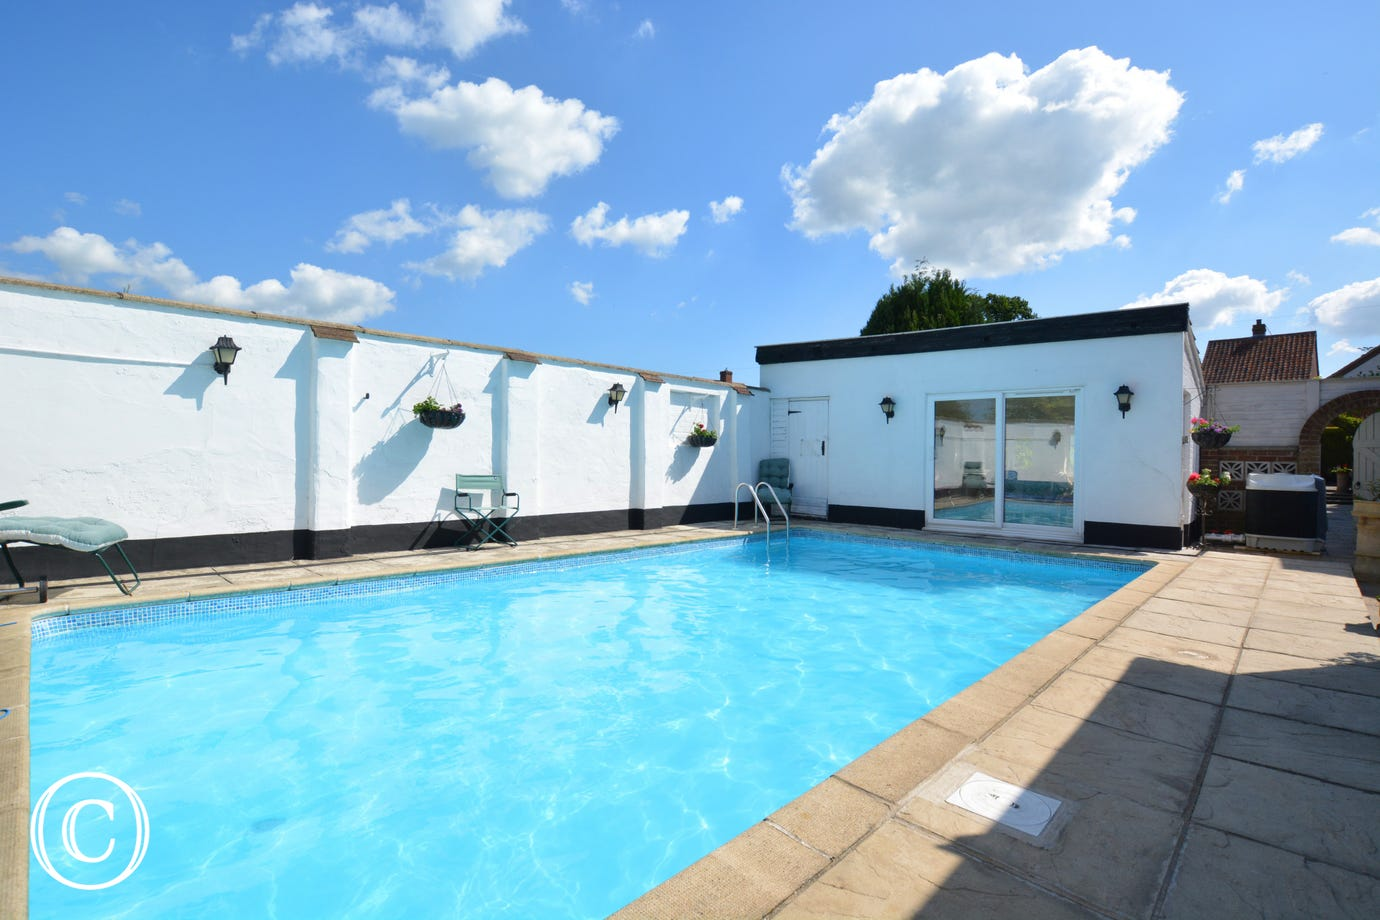 This property has the added luxury of an outdoor swimming pool!